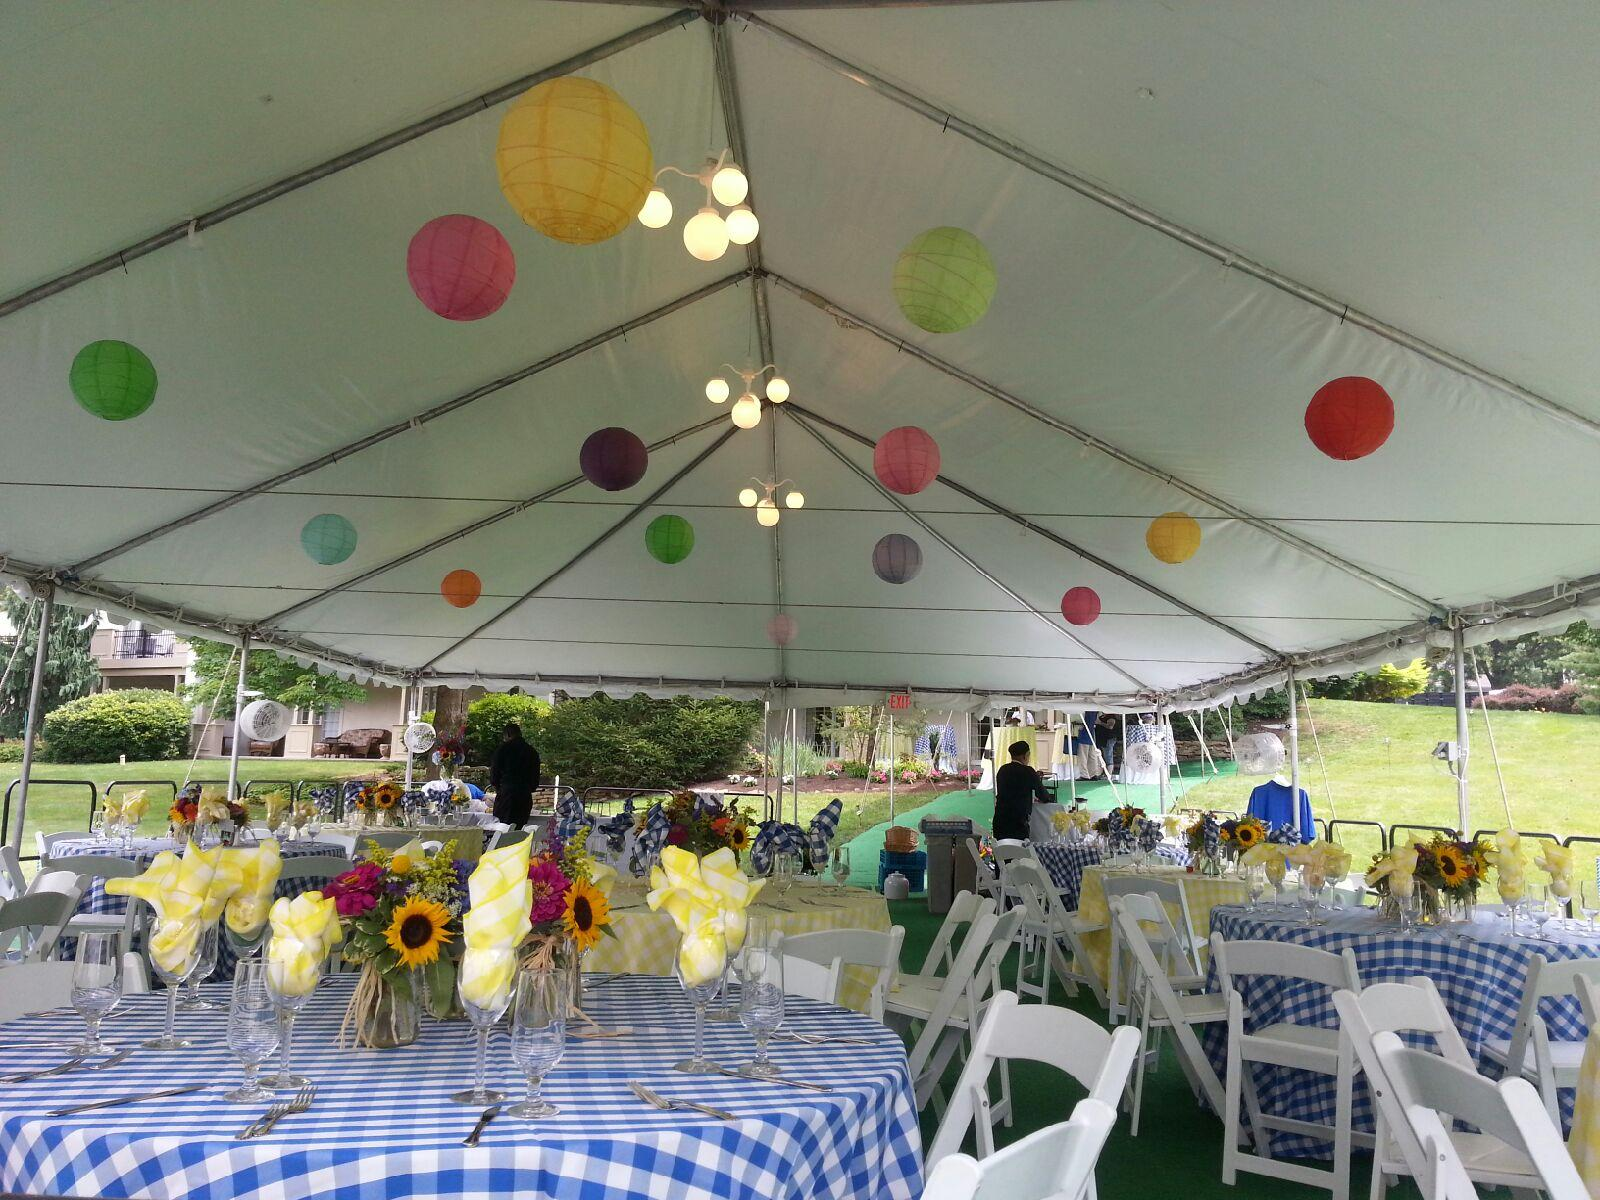 Discount on all Linens with frame tent reservation before April 15, 2015